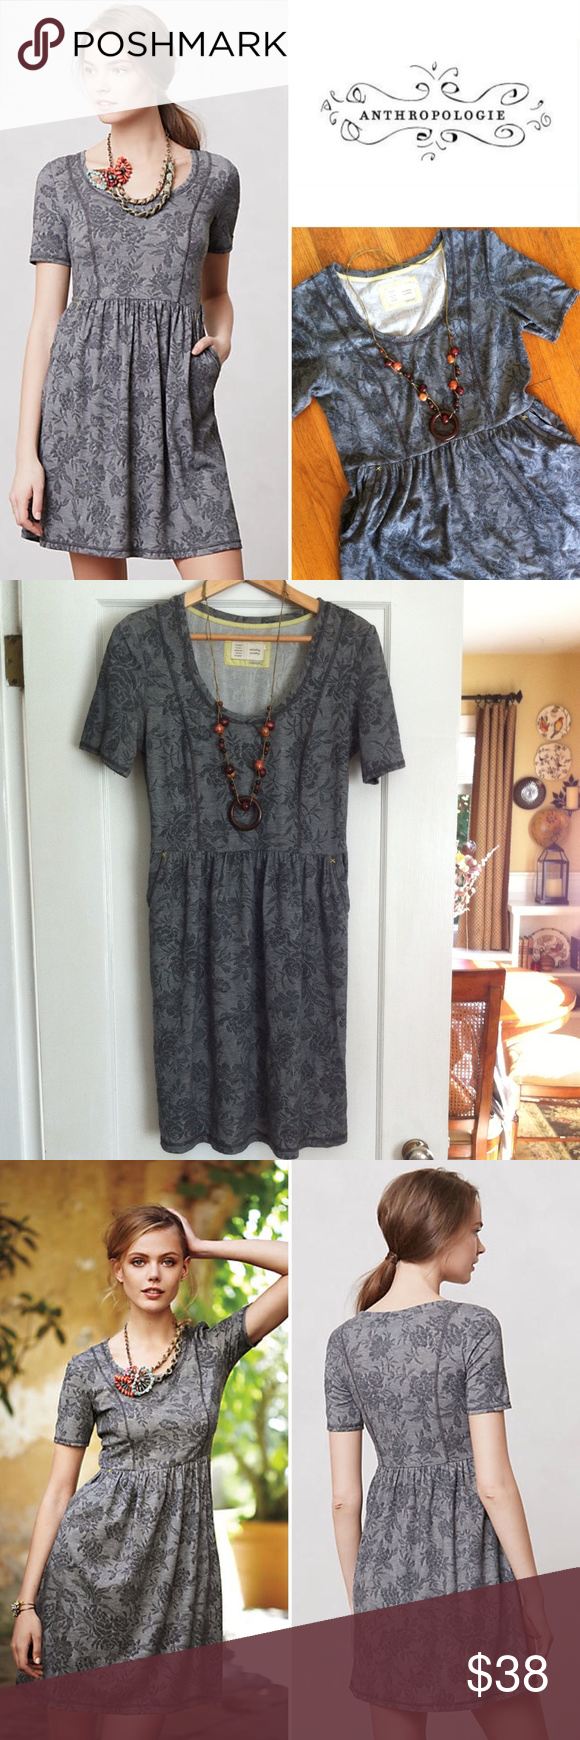 Saturday Sunday gray jacquard day dress Weekends call for